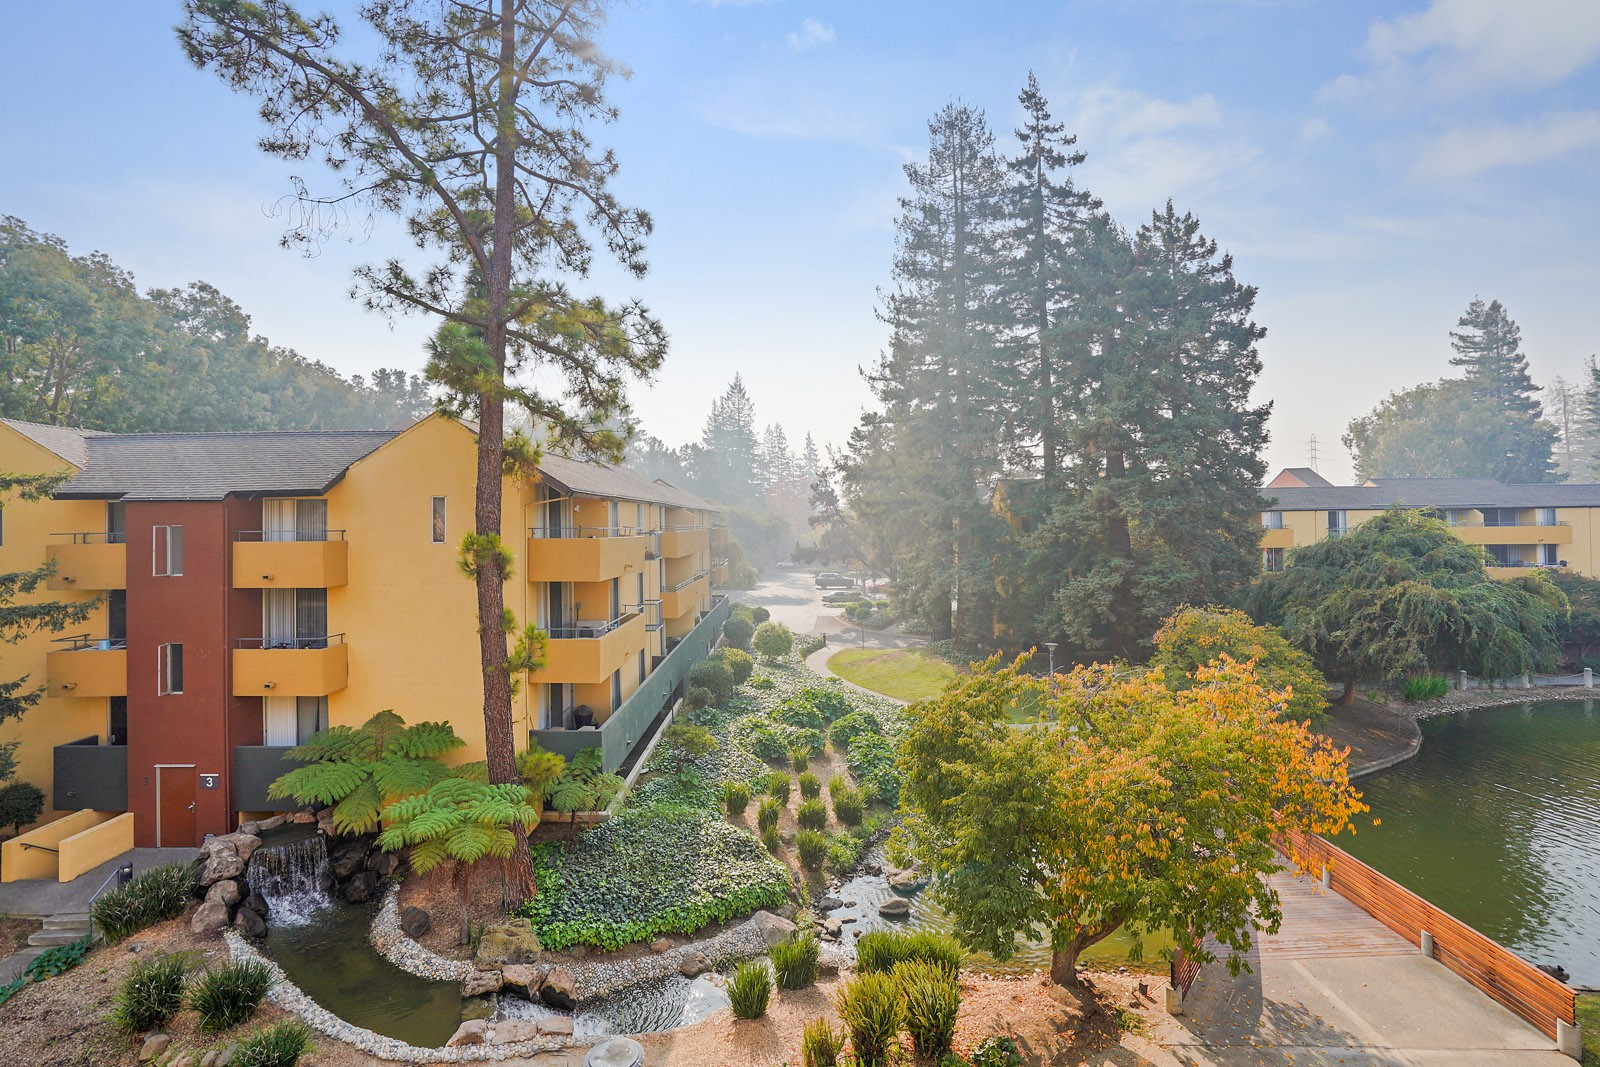 Apartments Near Foothill Americana Apartments for Foothill College Students in Los Altos Hills, CA